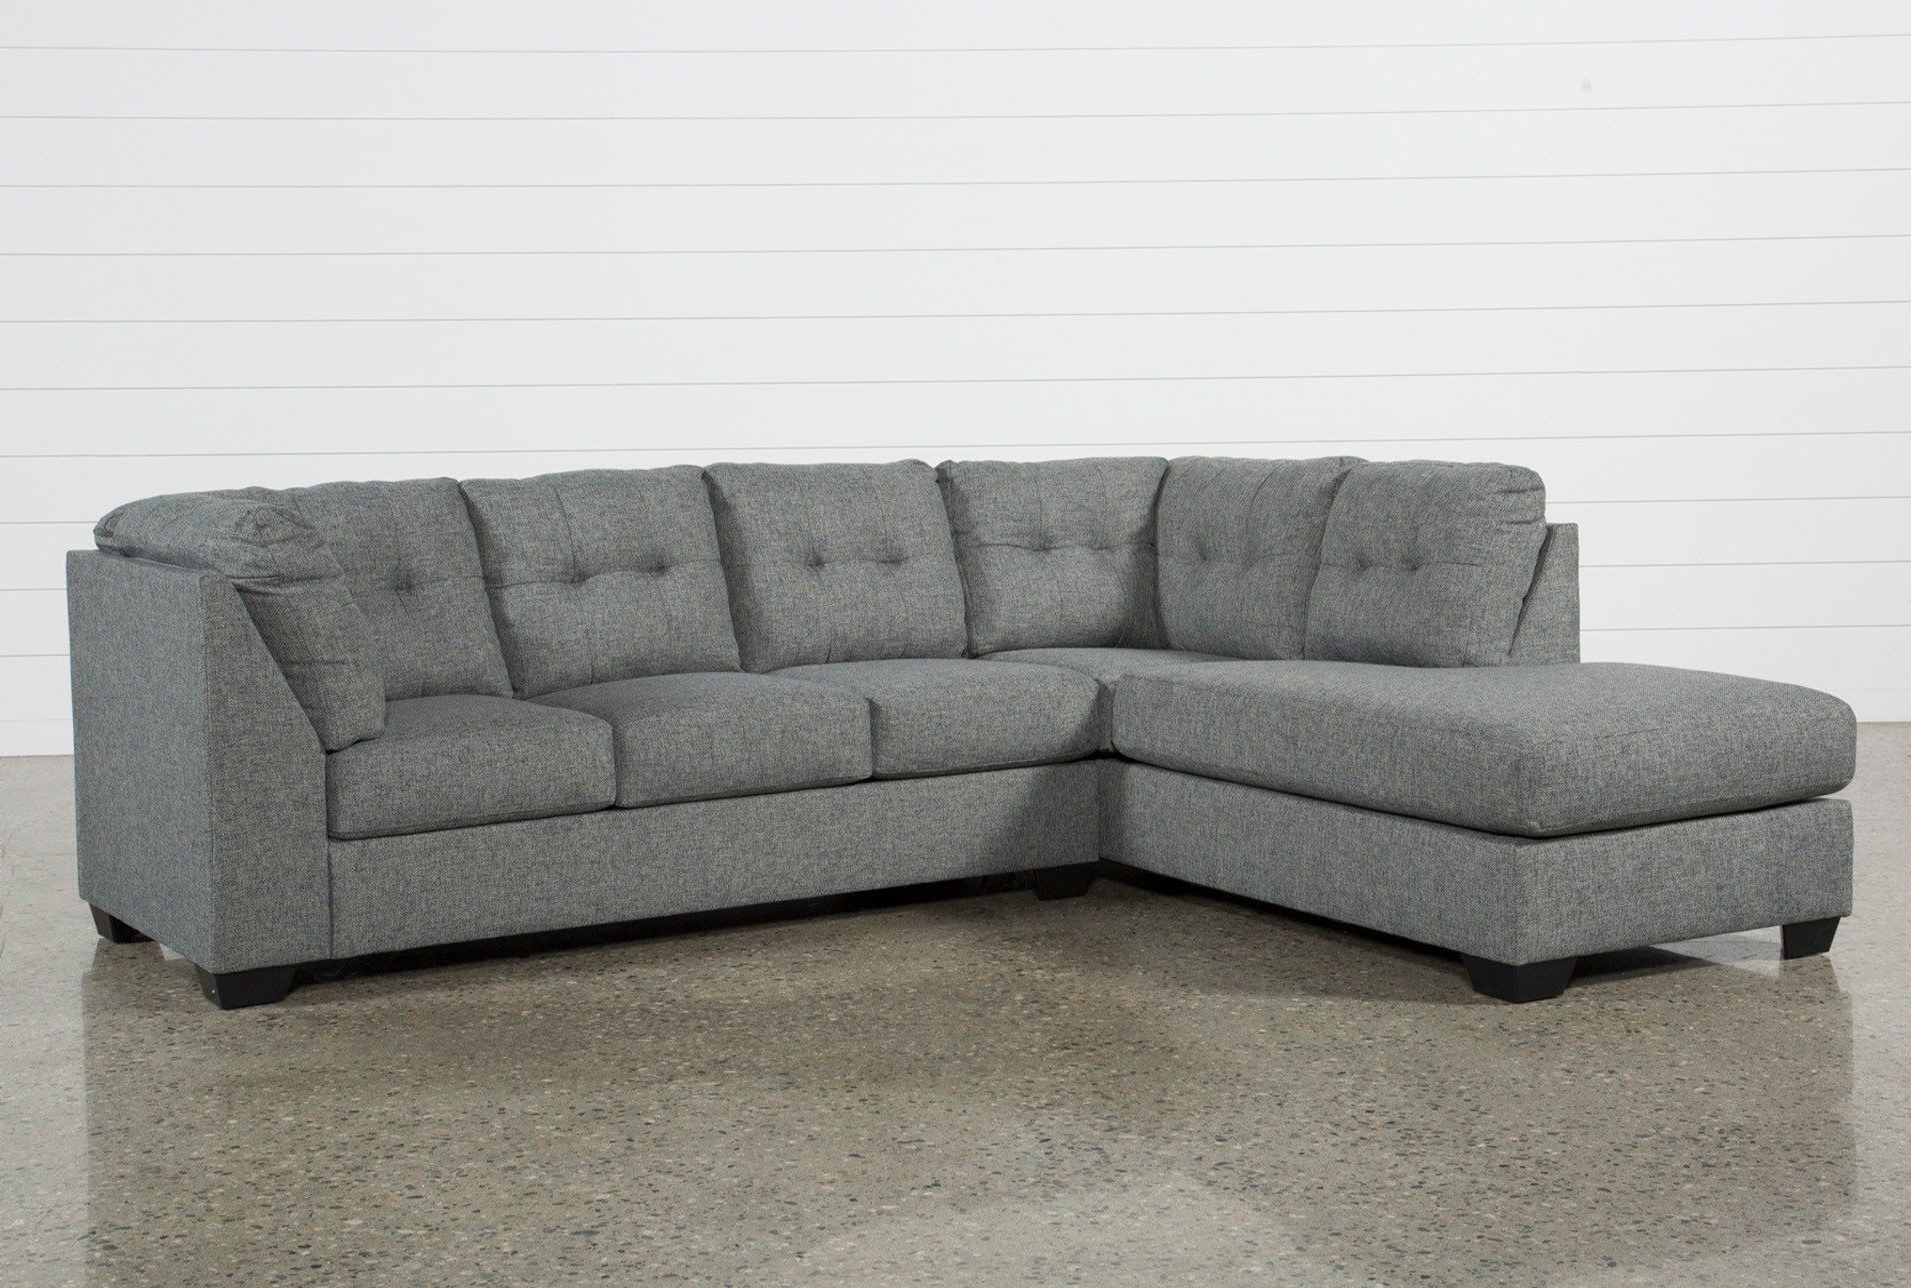 Kerri 2 Piece Sectionals With Raf Chaise In Most Recent Cosmos Grey 2 Piece Sectional W/laf Chaise (View 7 of 20)